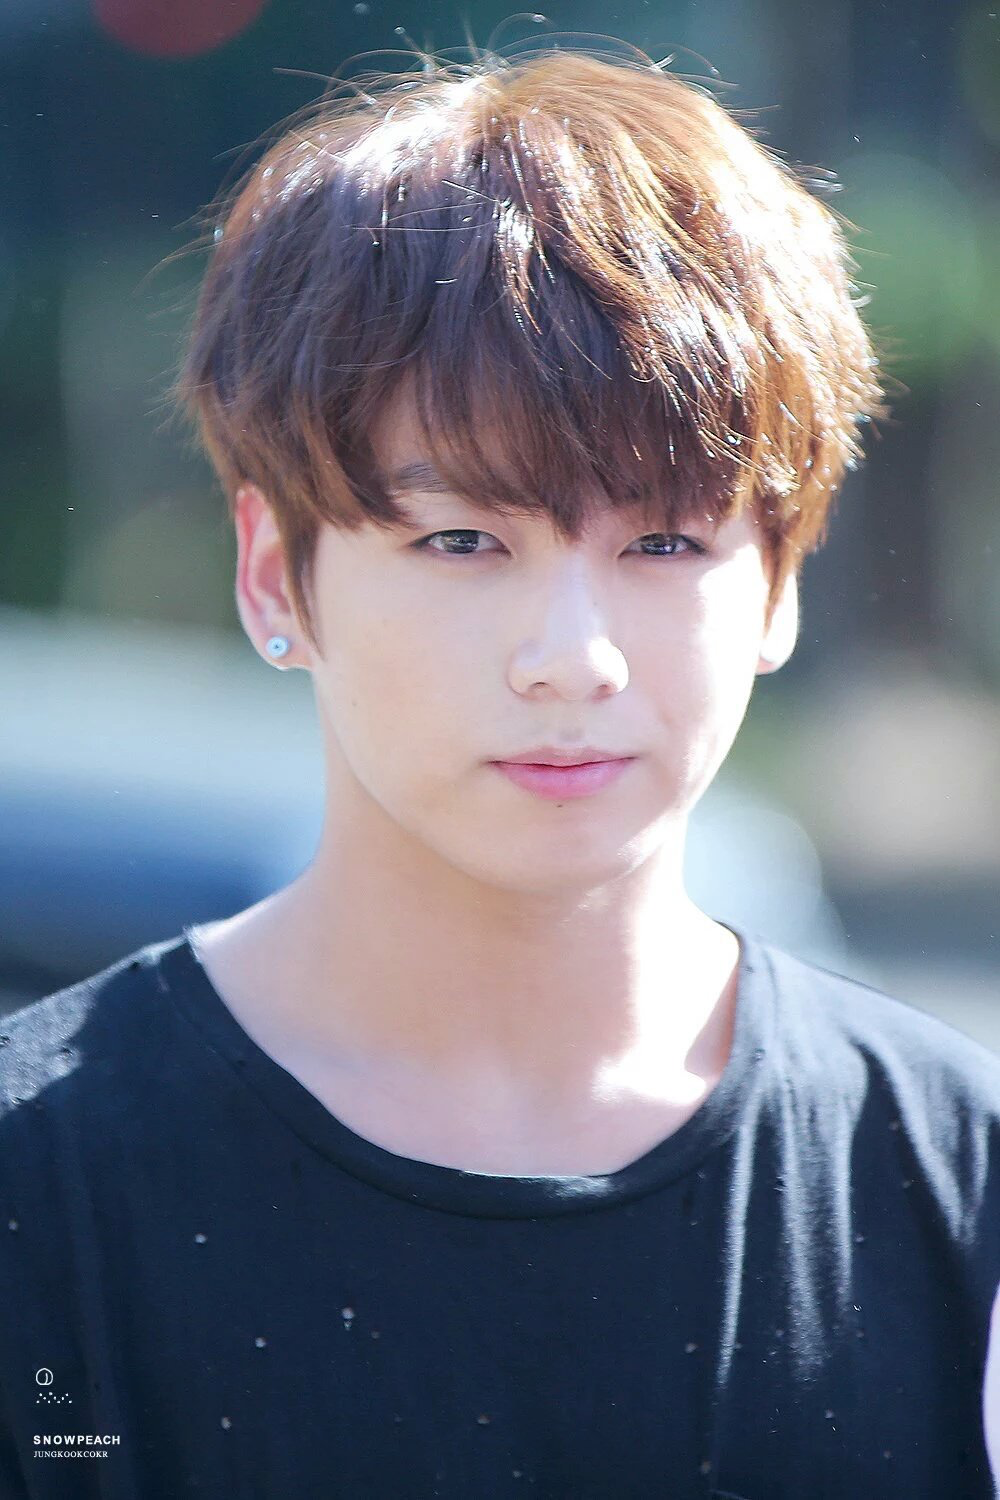 160513 BTS Jungkook At KBS Music Bank C Snow Peach Do Not Edit Crop Or Remove The Watermark